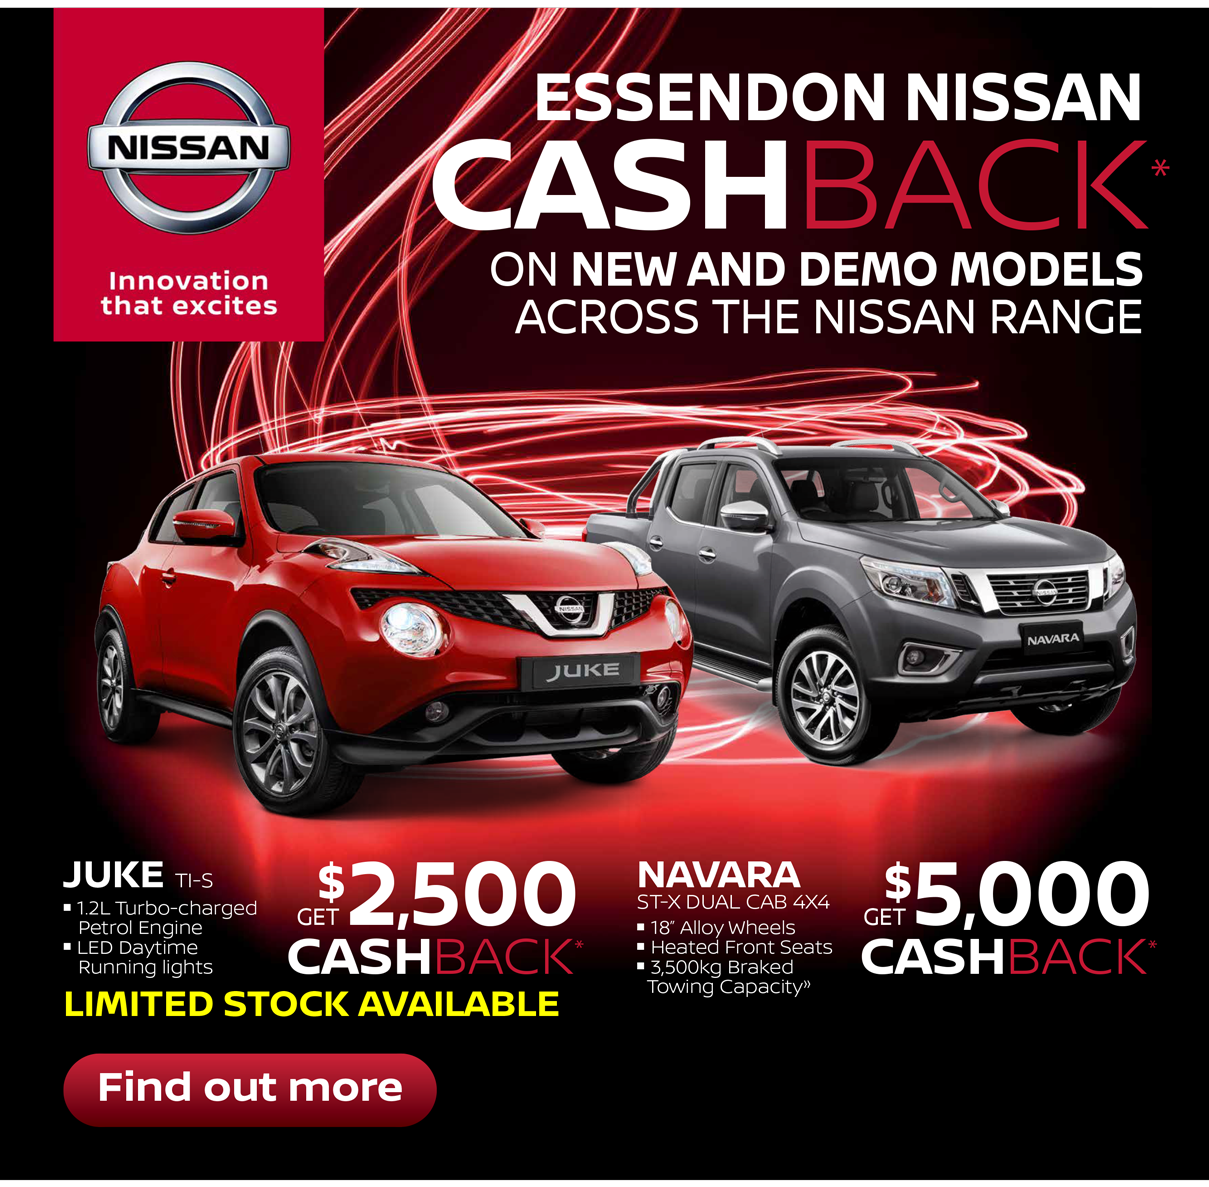 Nissan hot deals now on!